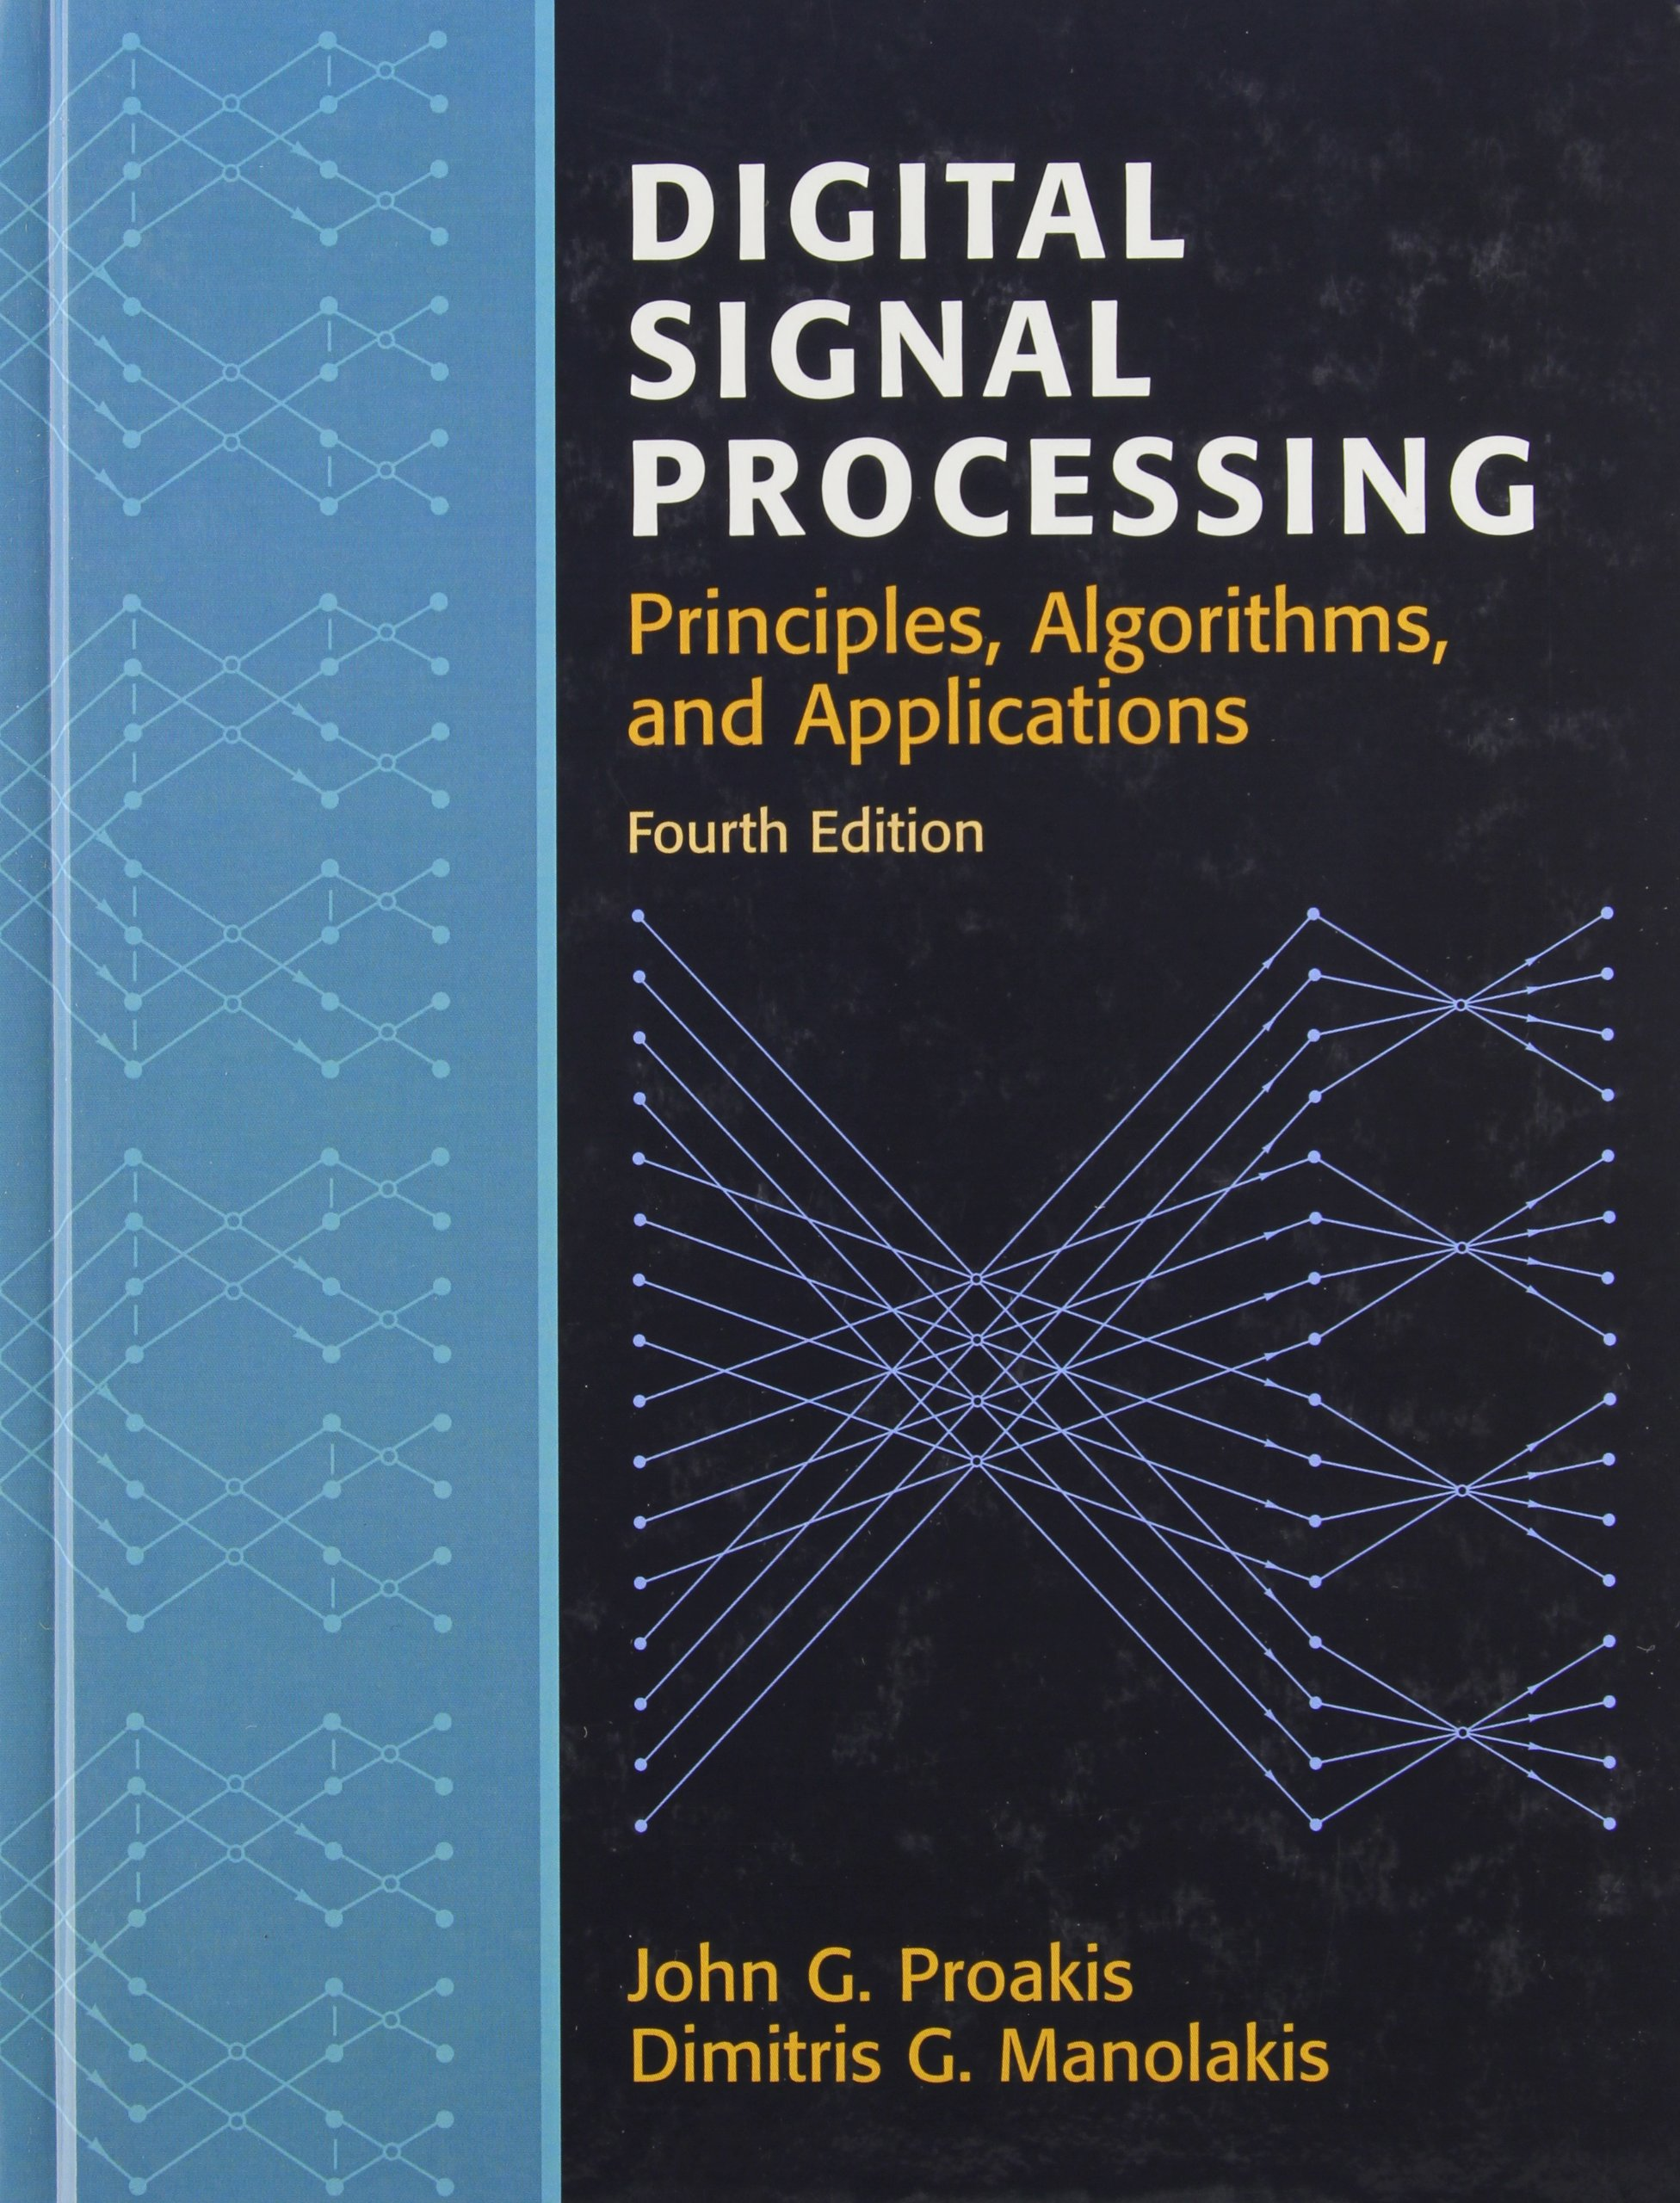 digital signal processing amazon co uk john g proakis dimitris k rh amazon  co uk